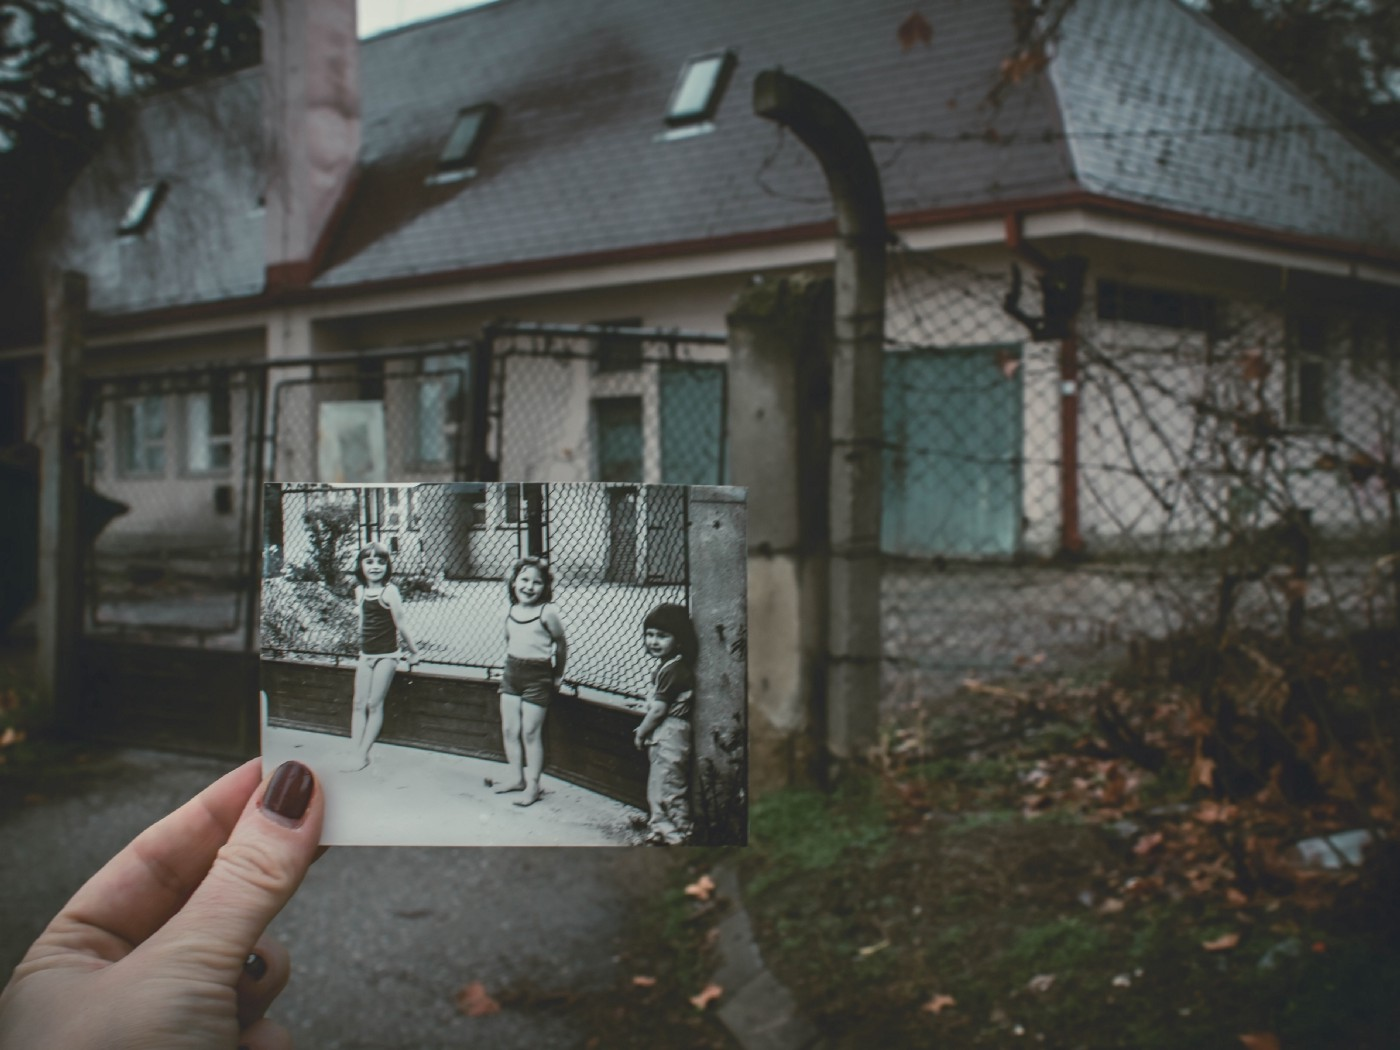 An old photo is held up in front of the building where it was taken a long time ago.